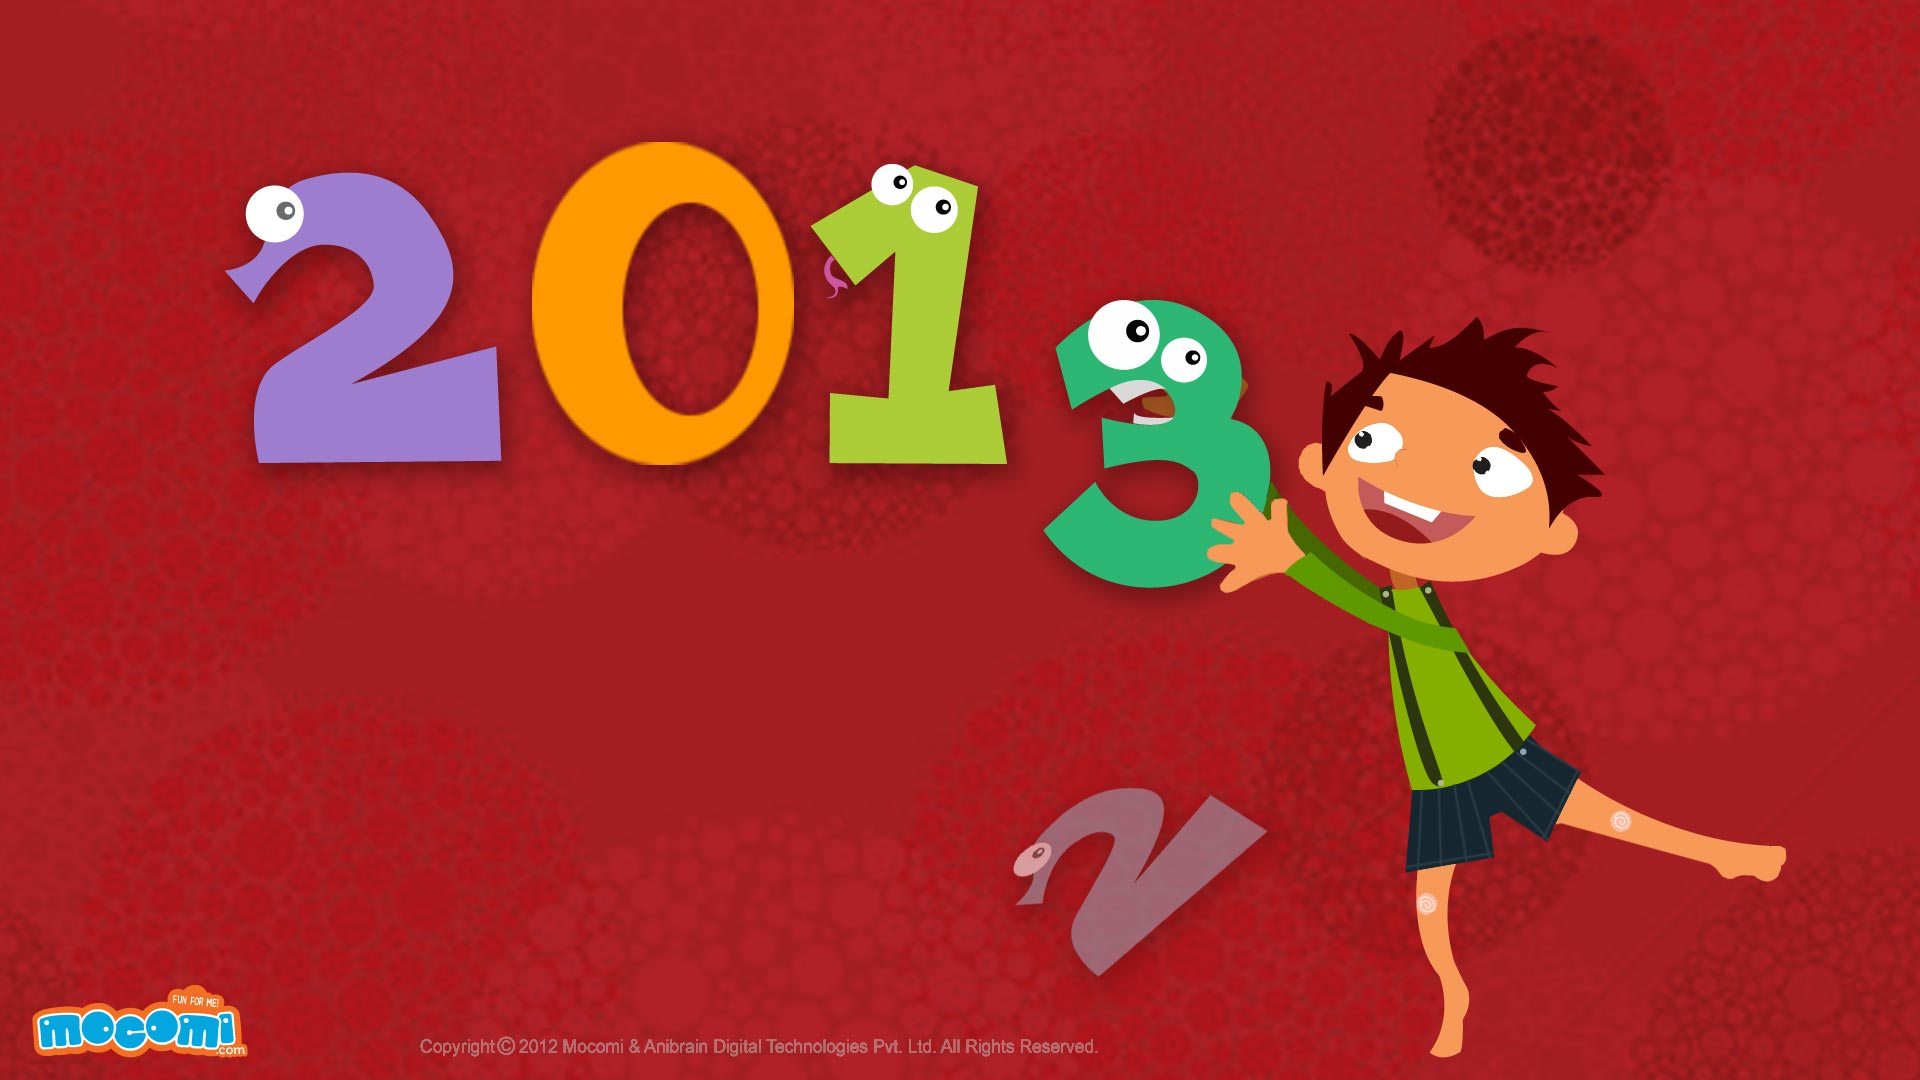 Happy New Year 2013 – 04